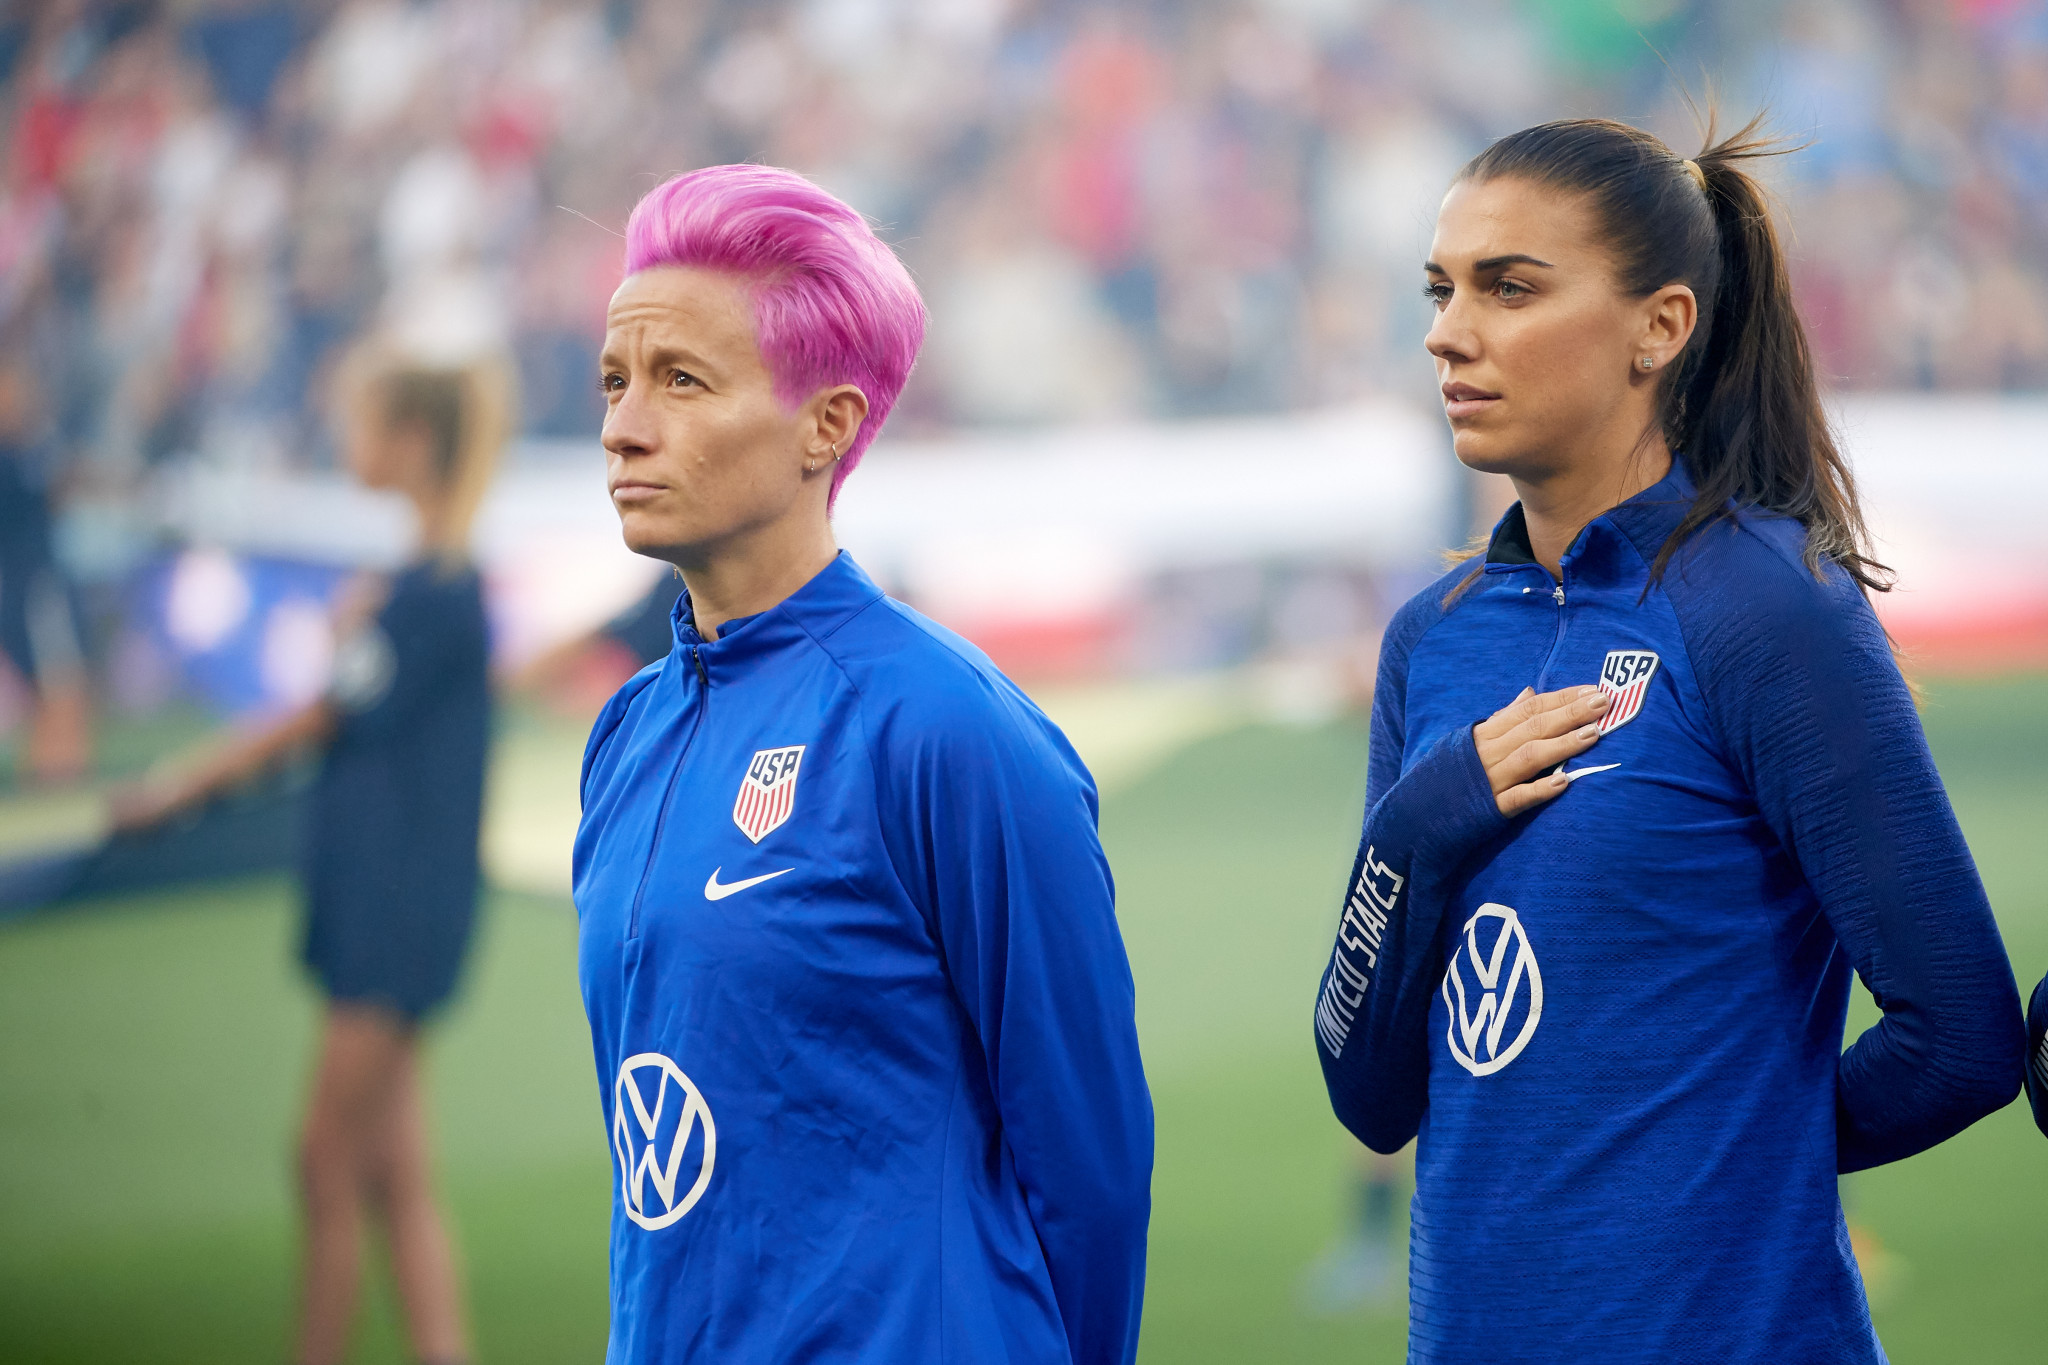 Megan Rapinoe has refused to sing the United States national anthem since 2016 ©Getty Images